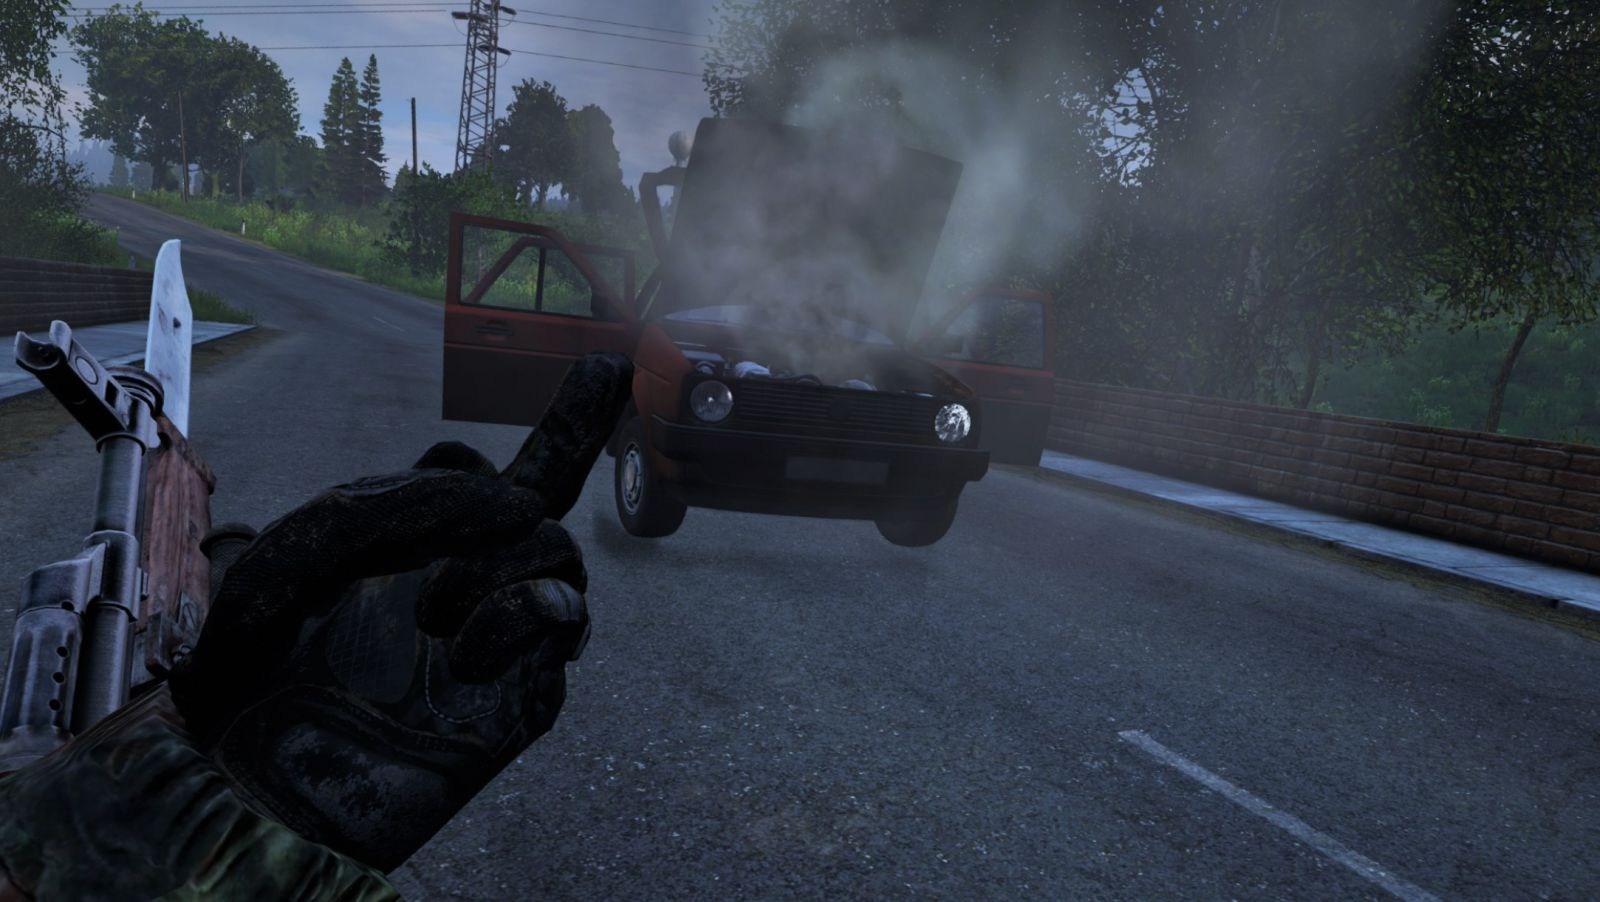 Learning that car radiators are in DayZ, the hard way...